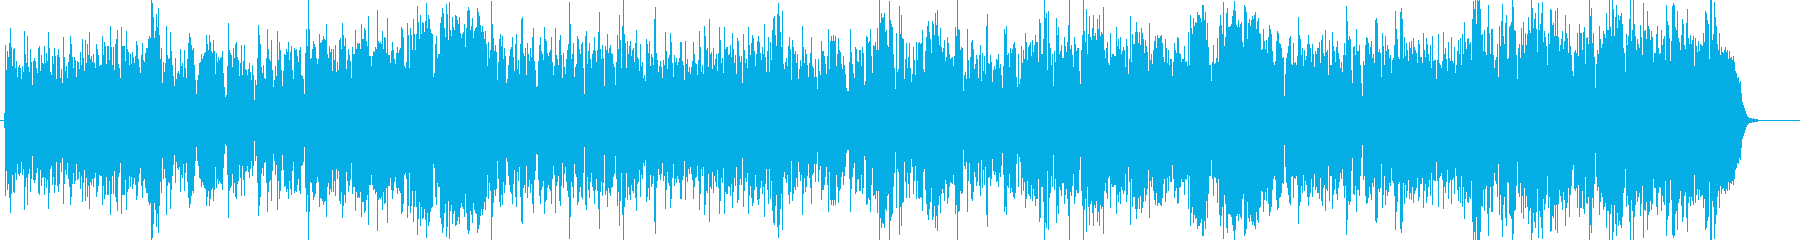 Modern BGM such as flute's reproduced waveform